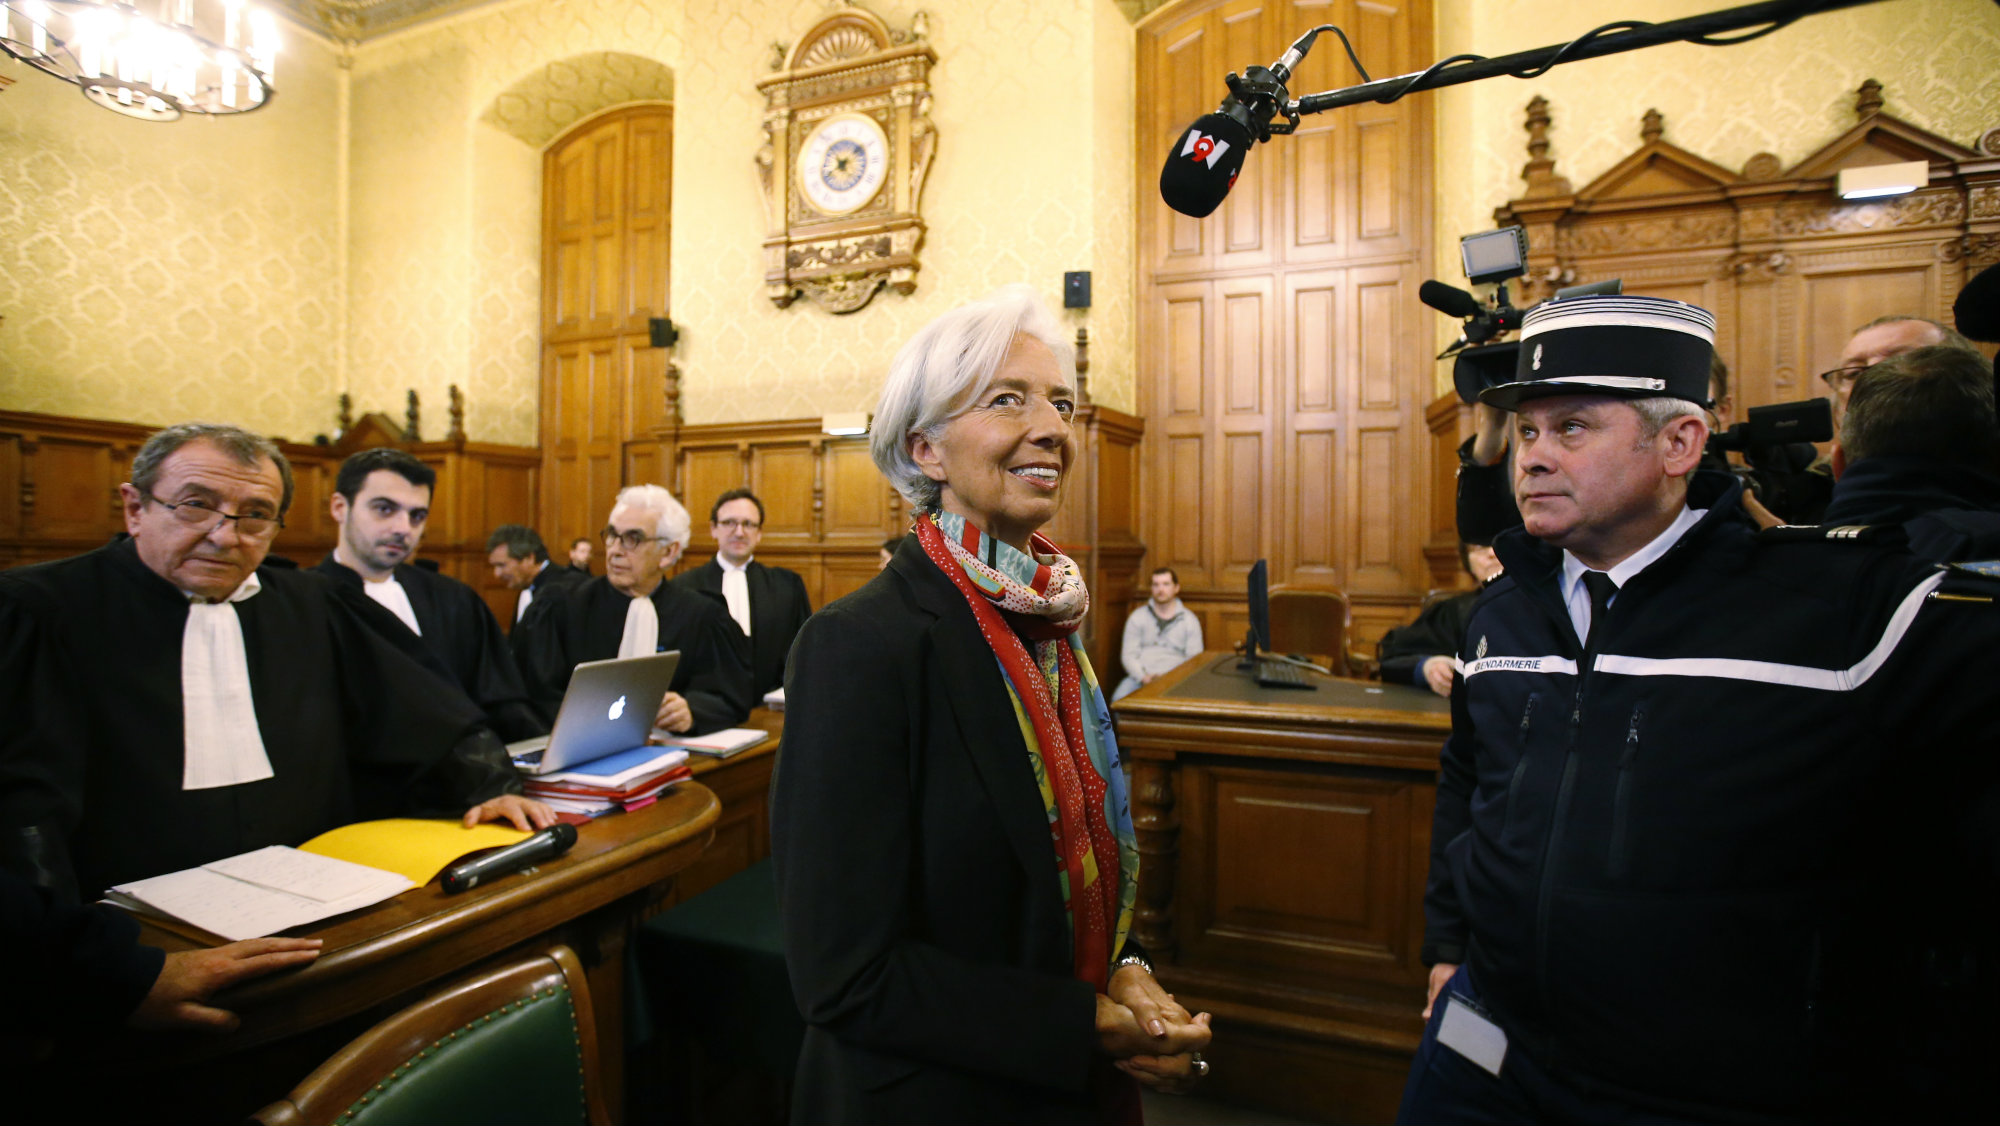 IMF managing director Christine Lagarde appears in court in Paris.